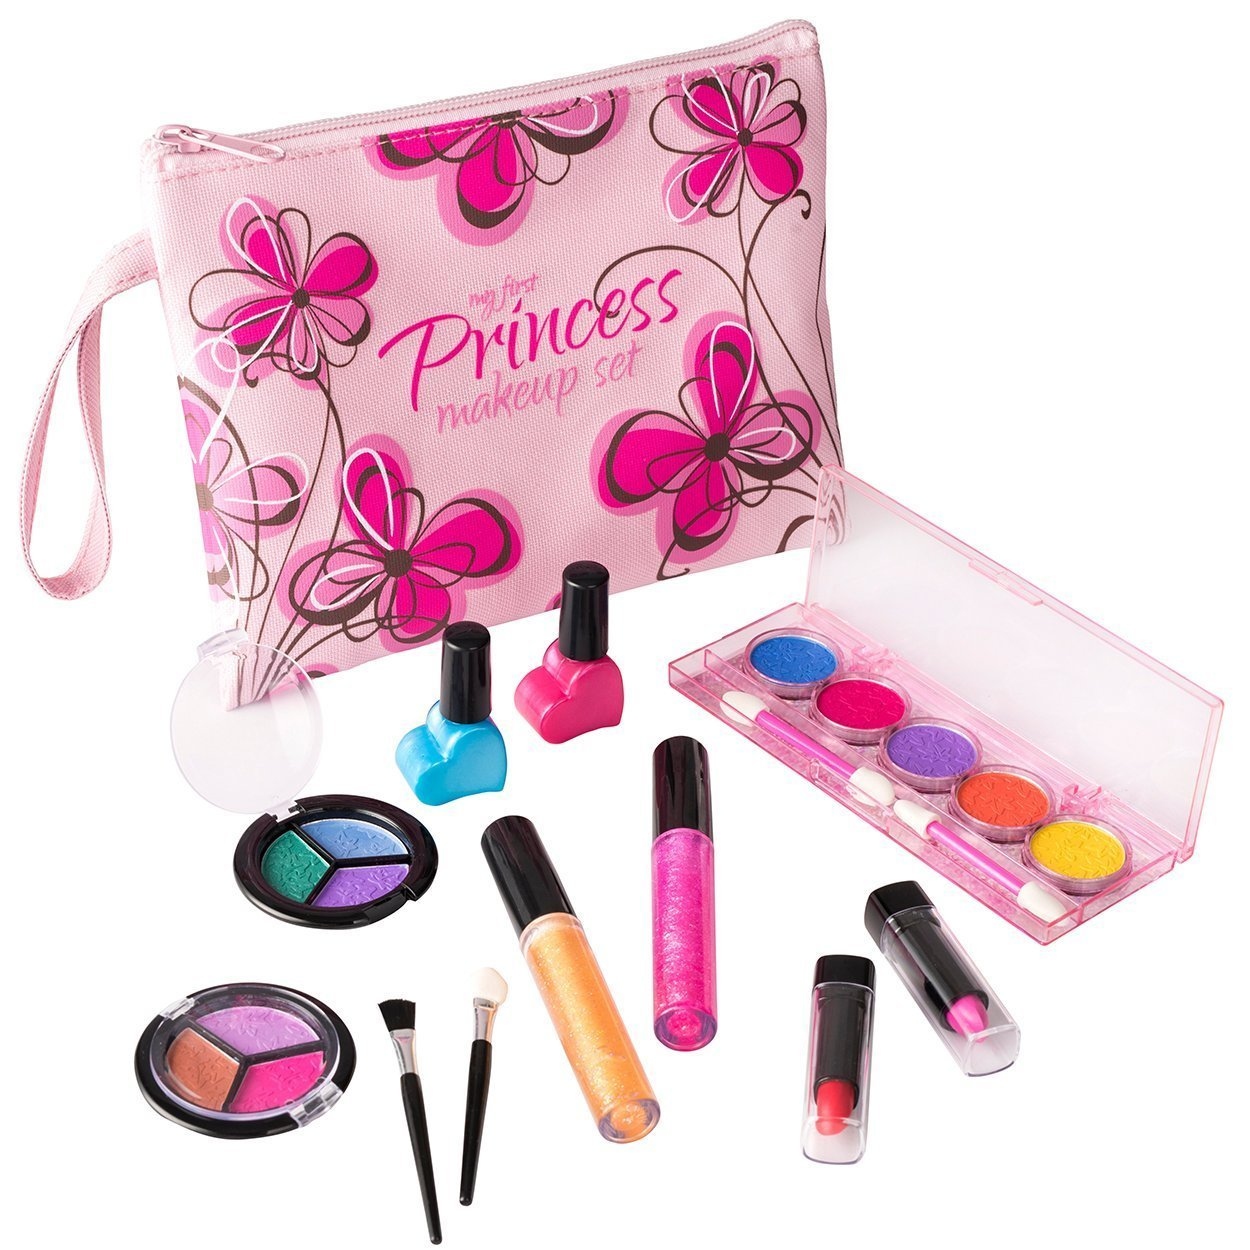 My First Princess Washable Real Makeup Set, with Designer Floral Cosmetic Bag.